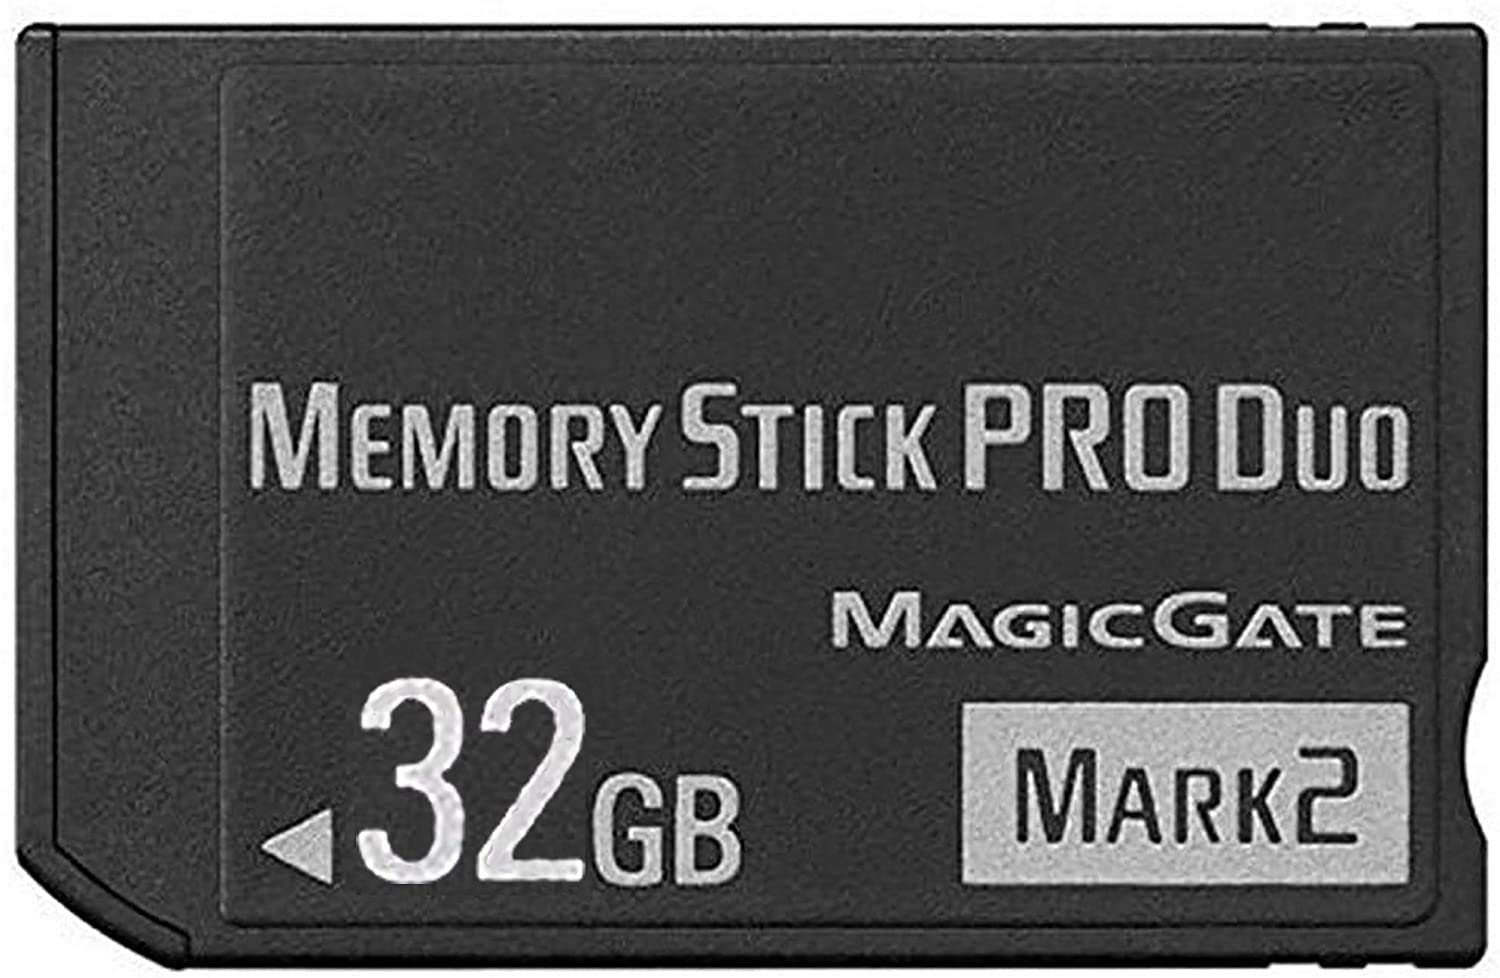 MS 32GB Memory Stick Pro Duo MARK2 for PSP 1000 2000 3000 Accessories/Camera Memory Card